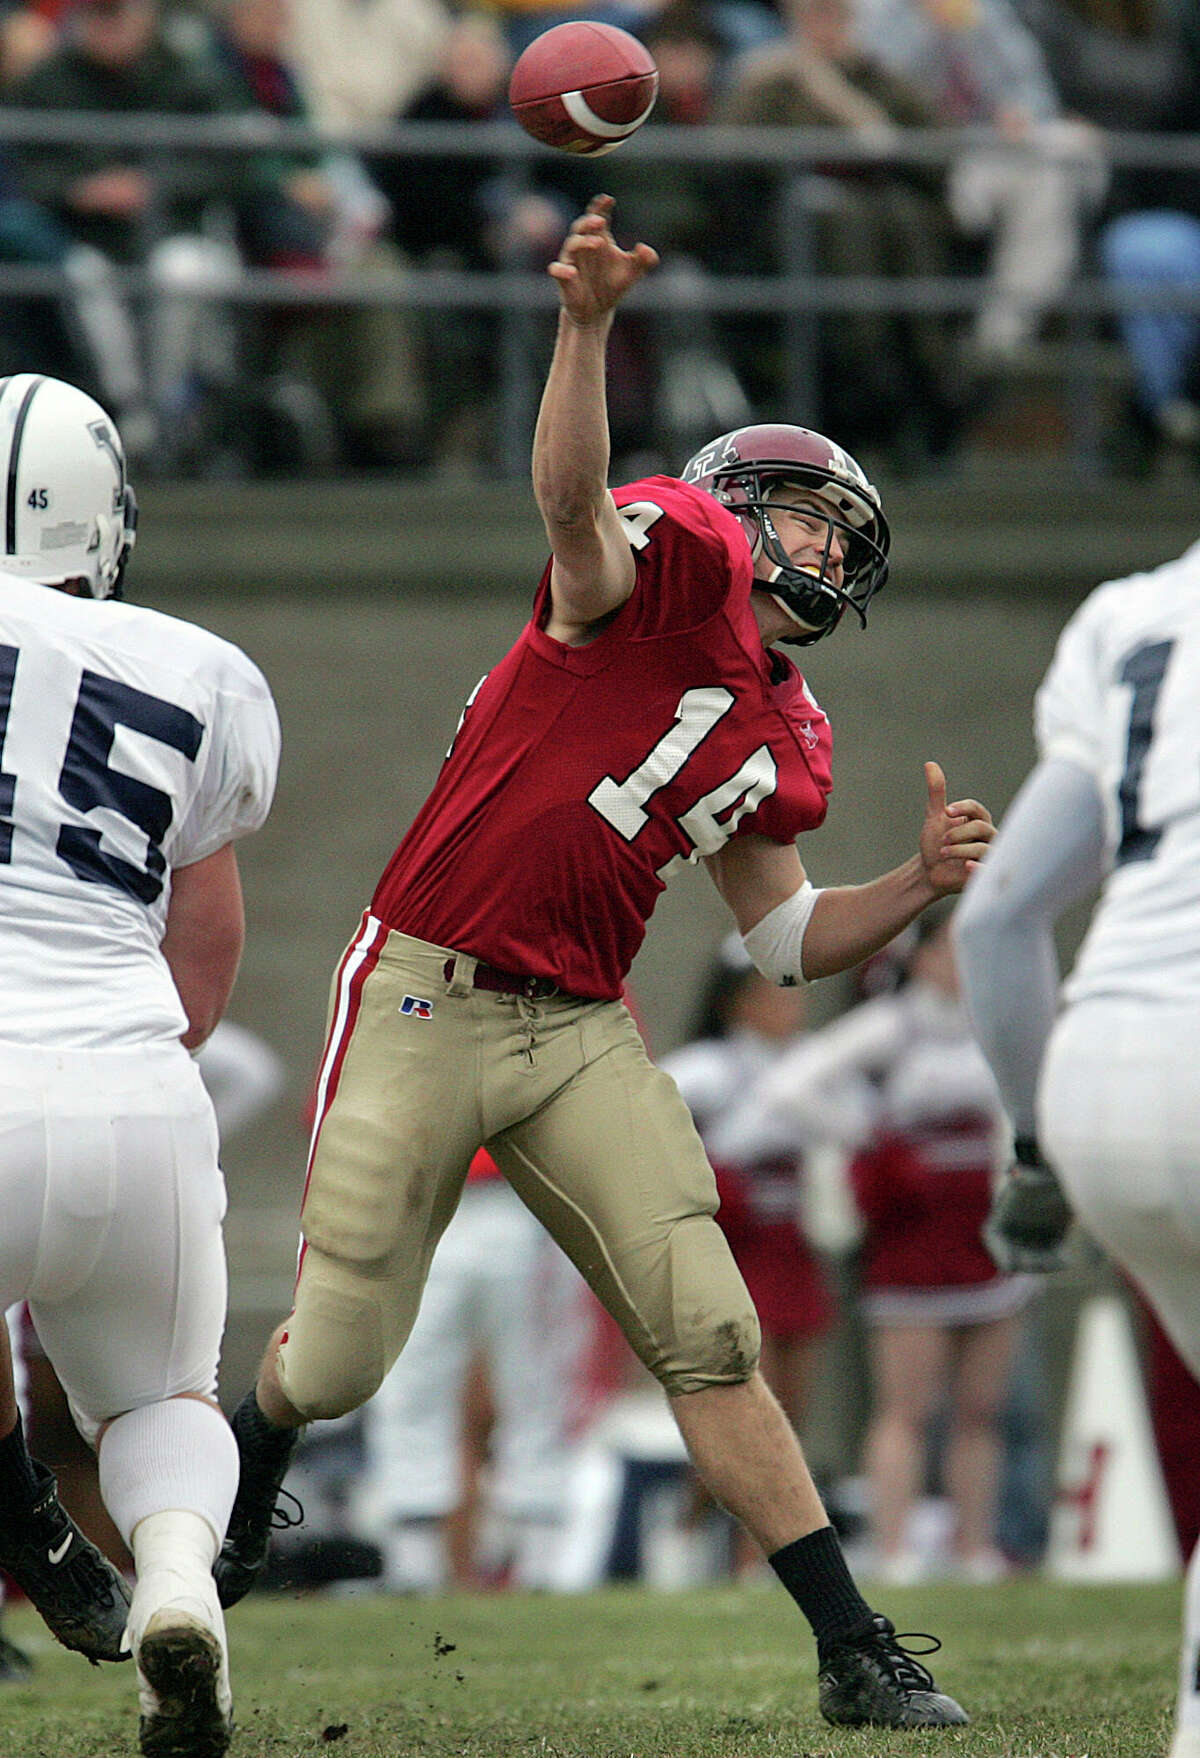 FILE - In this Saturday, Nov. 20, 2004 file photo, Harvard quarterback Ryan Fitzpatrick (14) throws long against Yale in the first quarter in Boston. Ryan Fitzpatrick has played in huge games before, so pressure is no big deal to the Jets quarterback. New York against New England this Sunday, Dec. 27, 2015? Try Harvard-Yale, 2004. (AP Photo/Michael Dwyer, File)